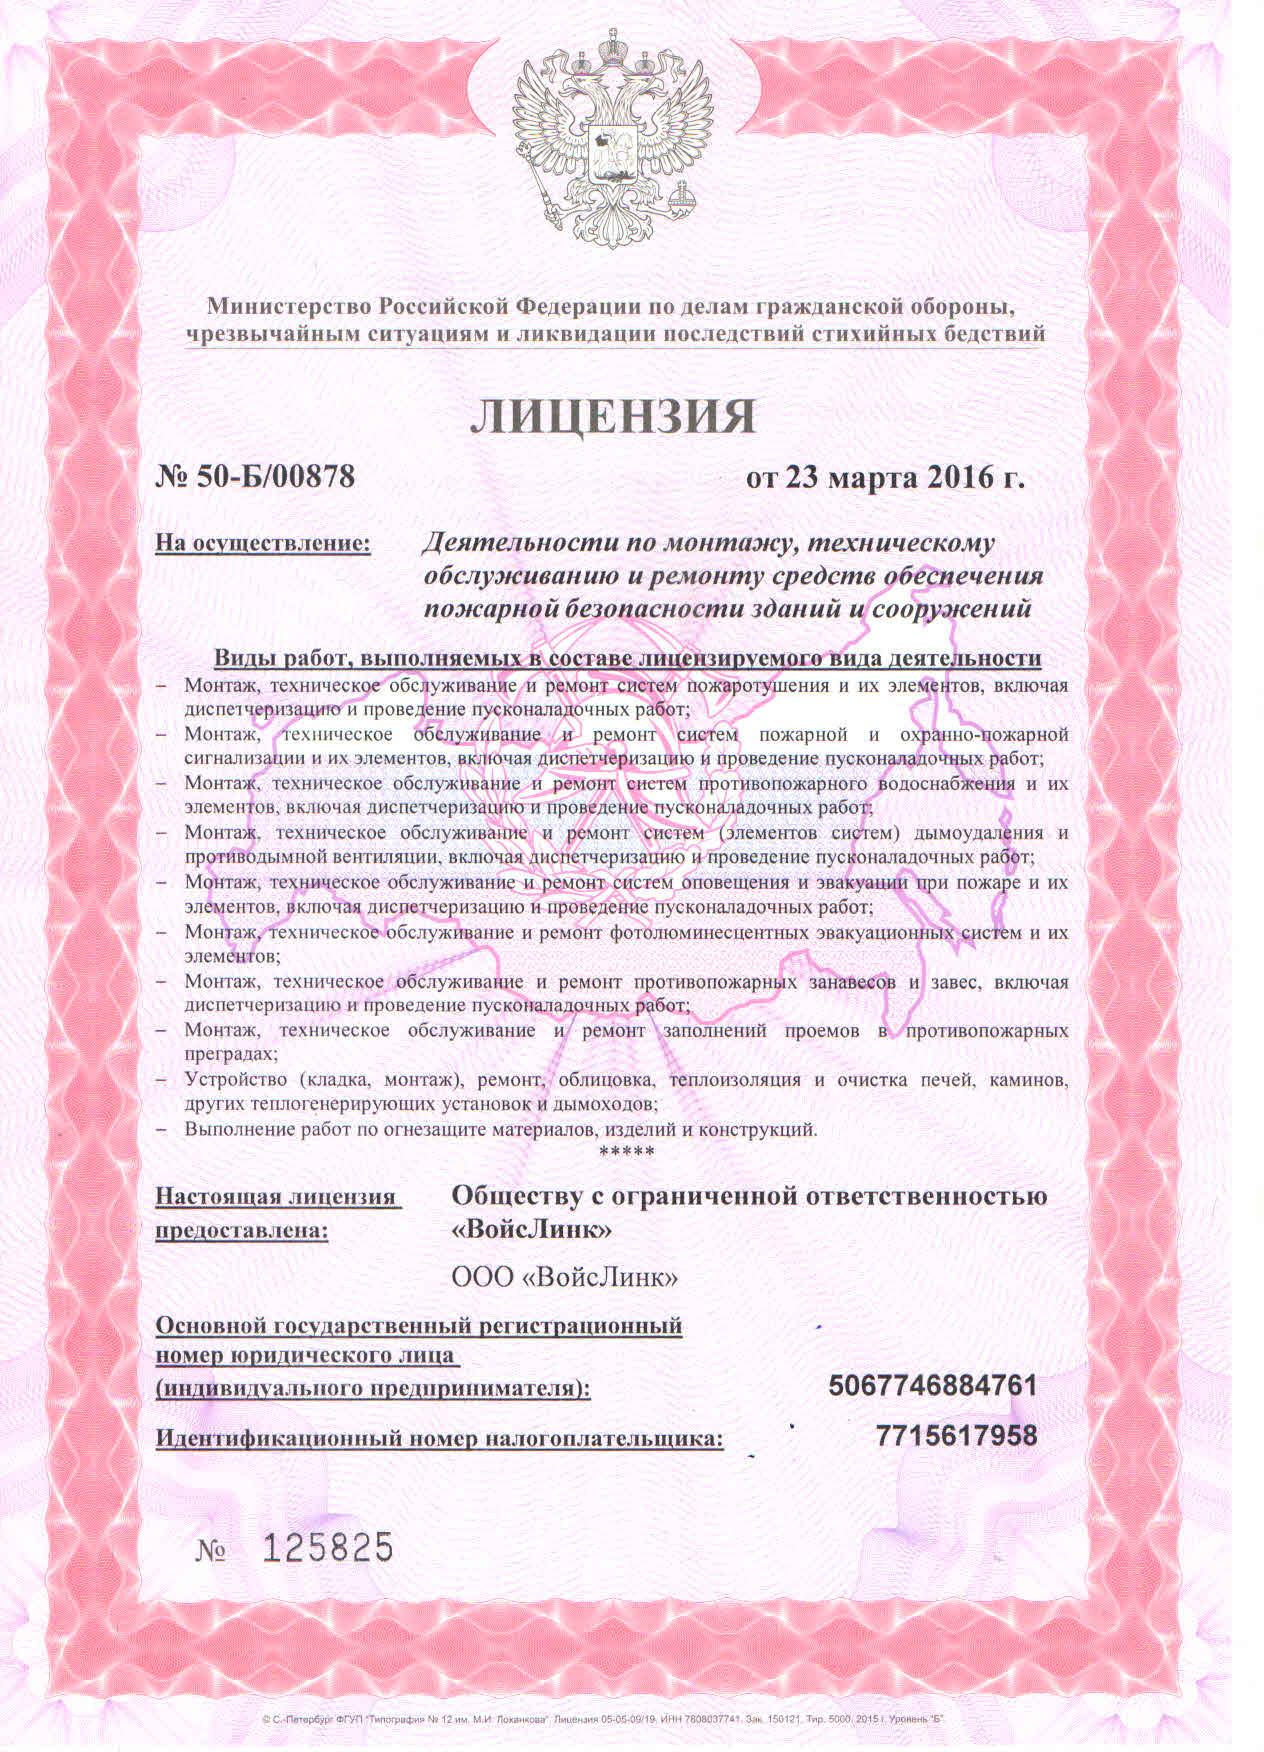 License of Russia's Emergency Ministry